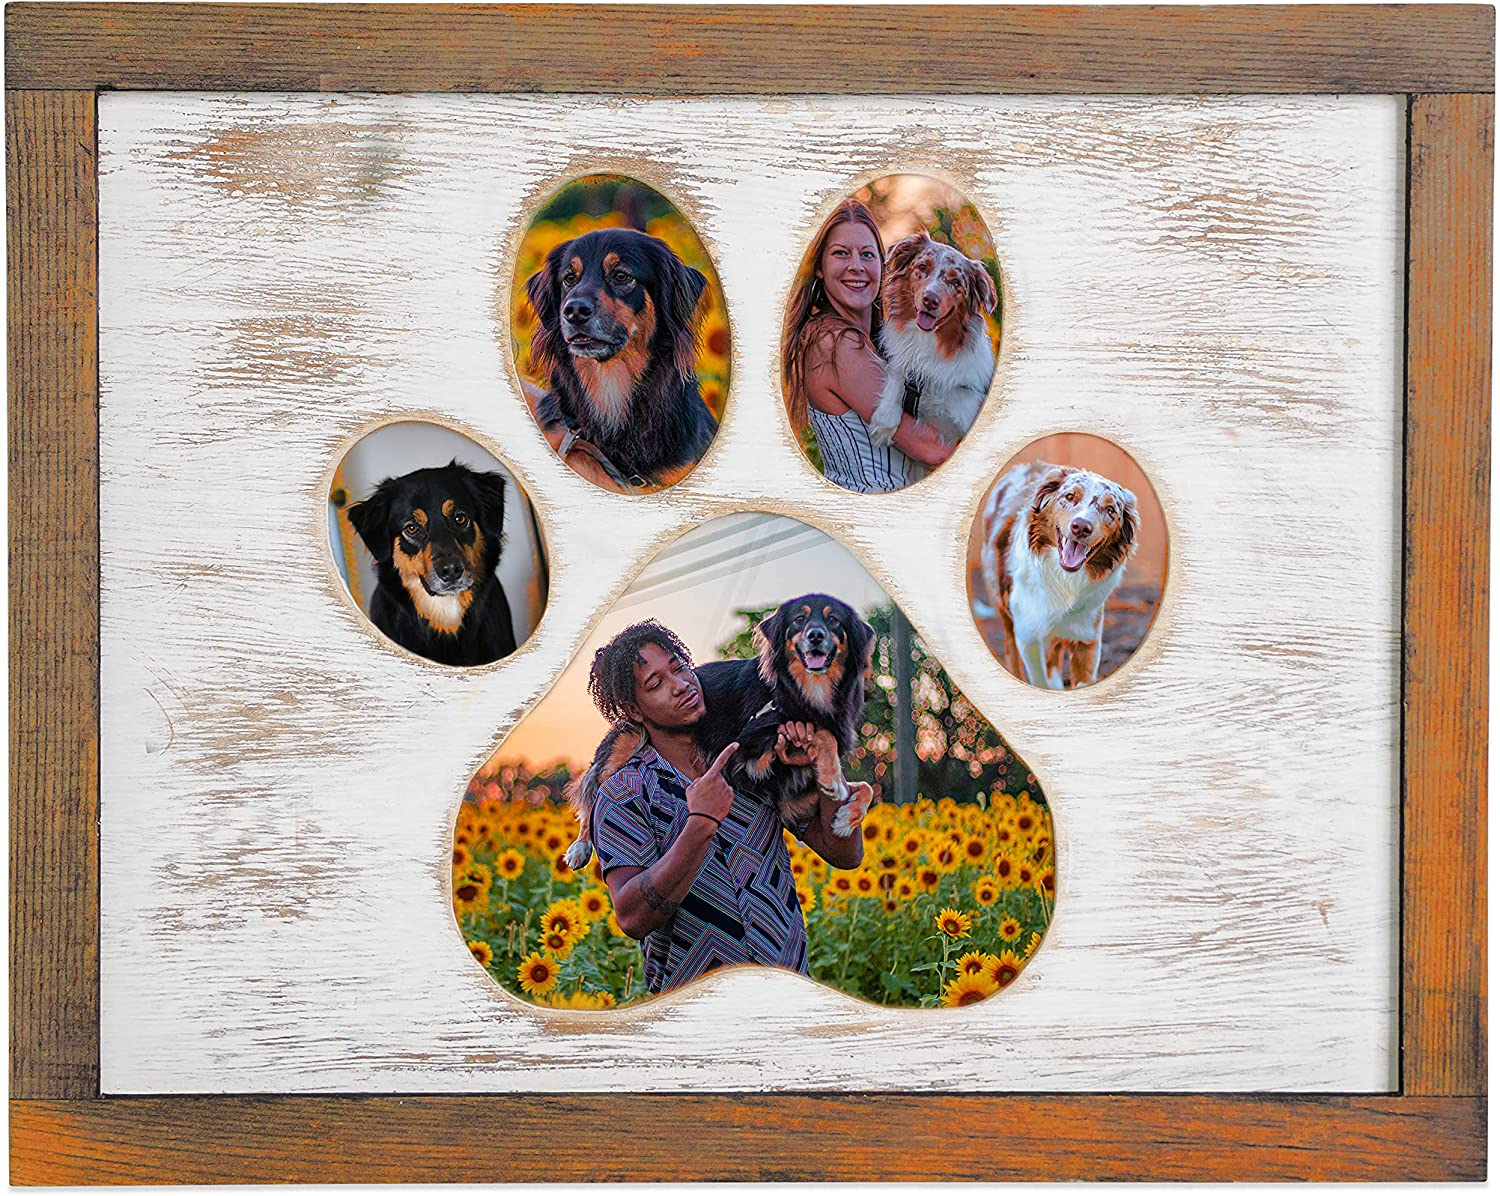 Dog Picture Frame With Paw Print Shape - Wooden Dog Photo Frame Gift For Pet Owners Or Memorial Keepsake For Dogs That Passed - Holds Multiple Pictures Of Your Favorite Friend (8x10, brown)